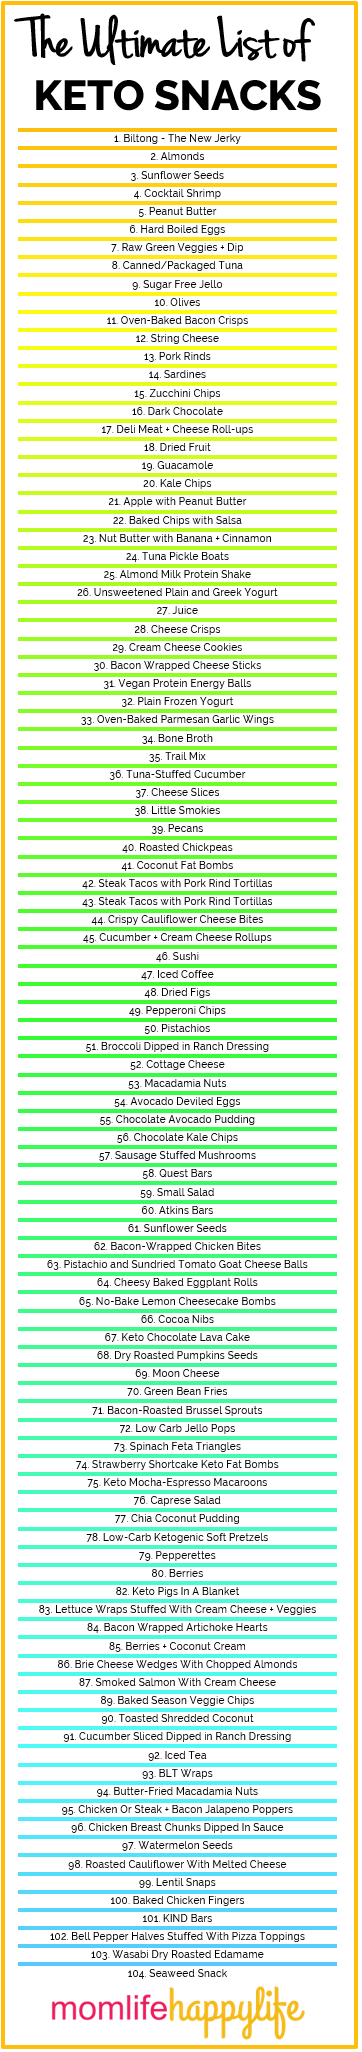 The Ultimate List of Keto Snacks for Weight Loss and Muscle Mass Growth 104 Snacks